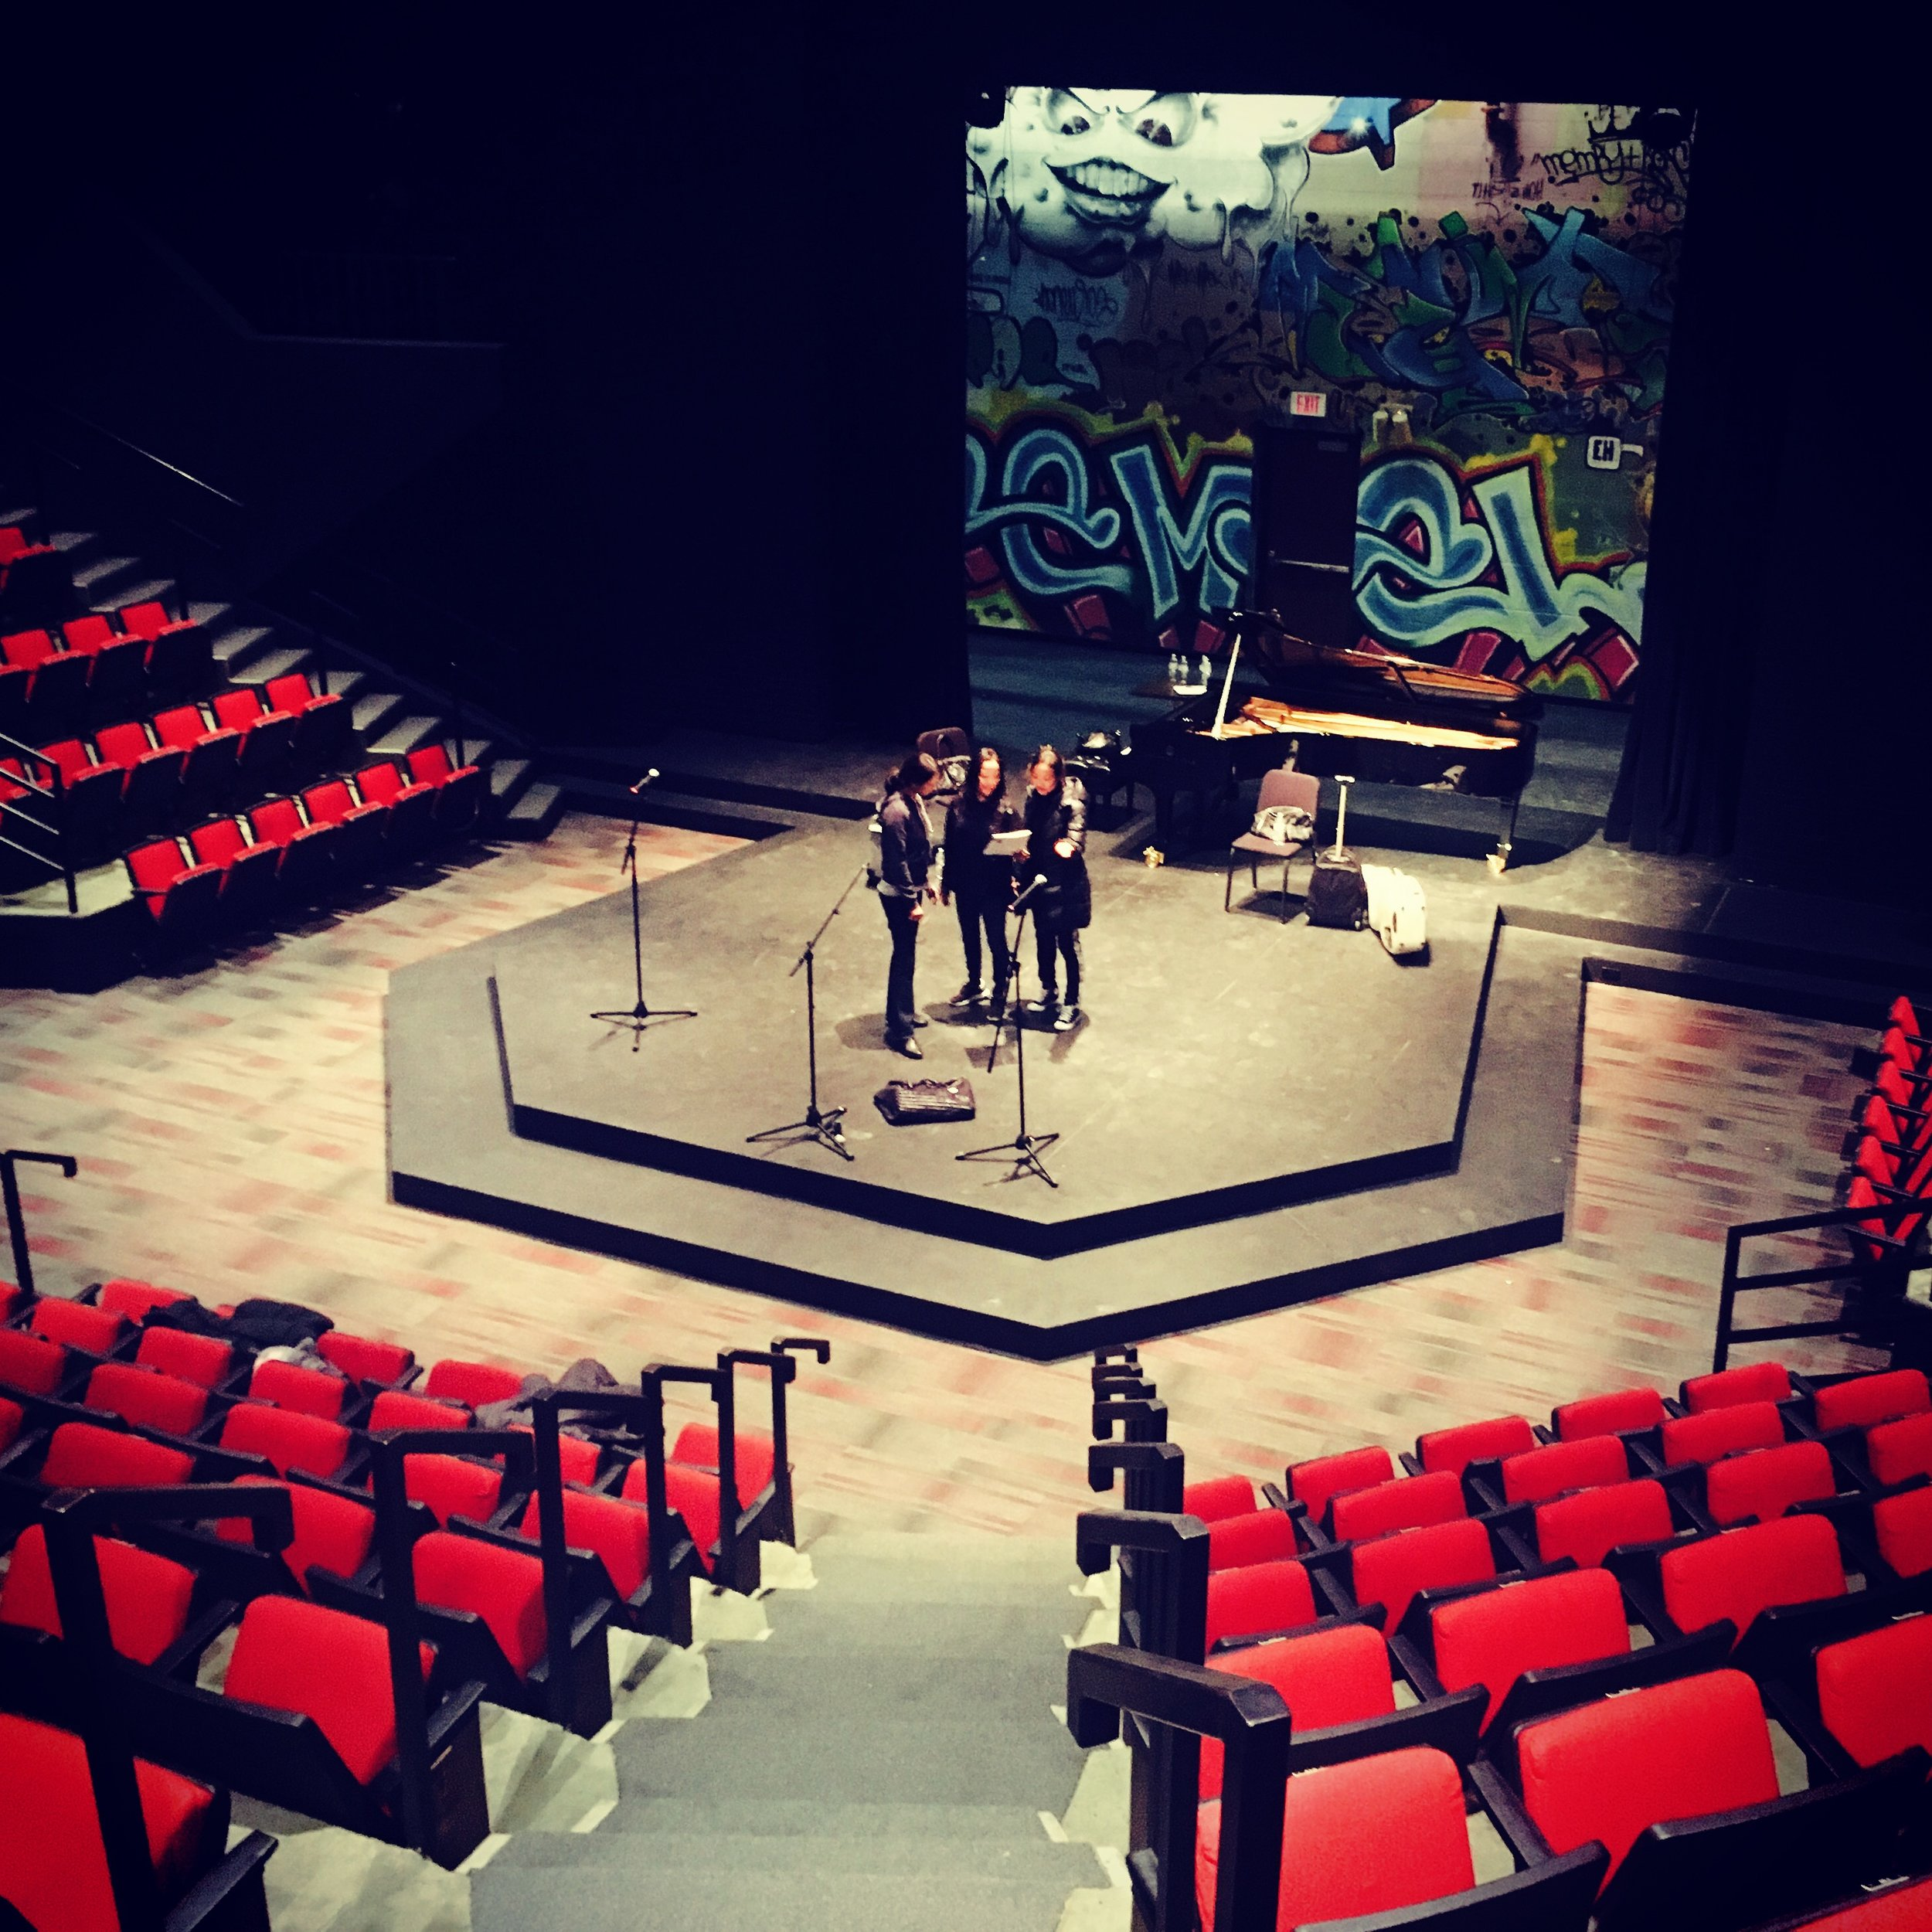 Ahn Trio at rehearsal pre-concert at Minnesota State University, loving the cool unique stage!